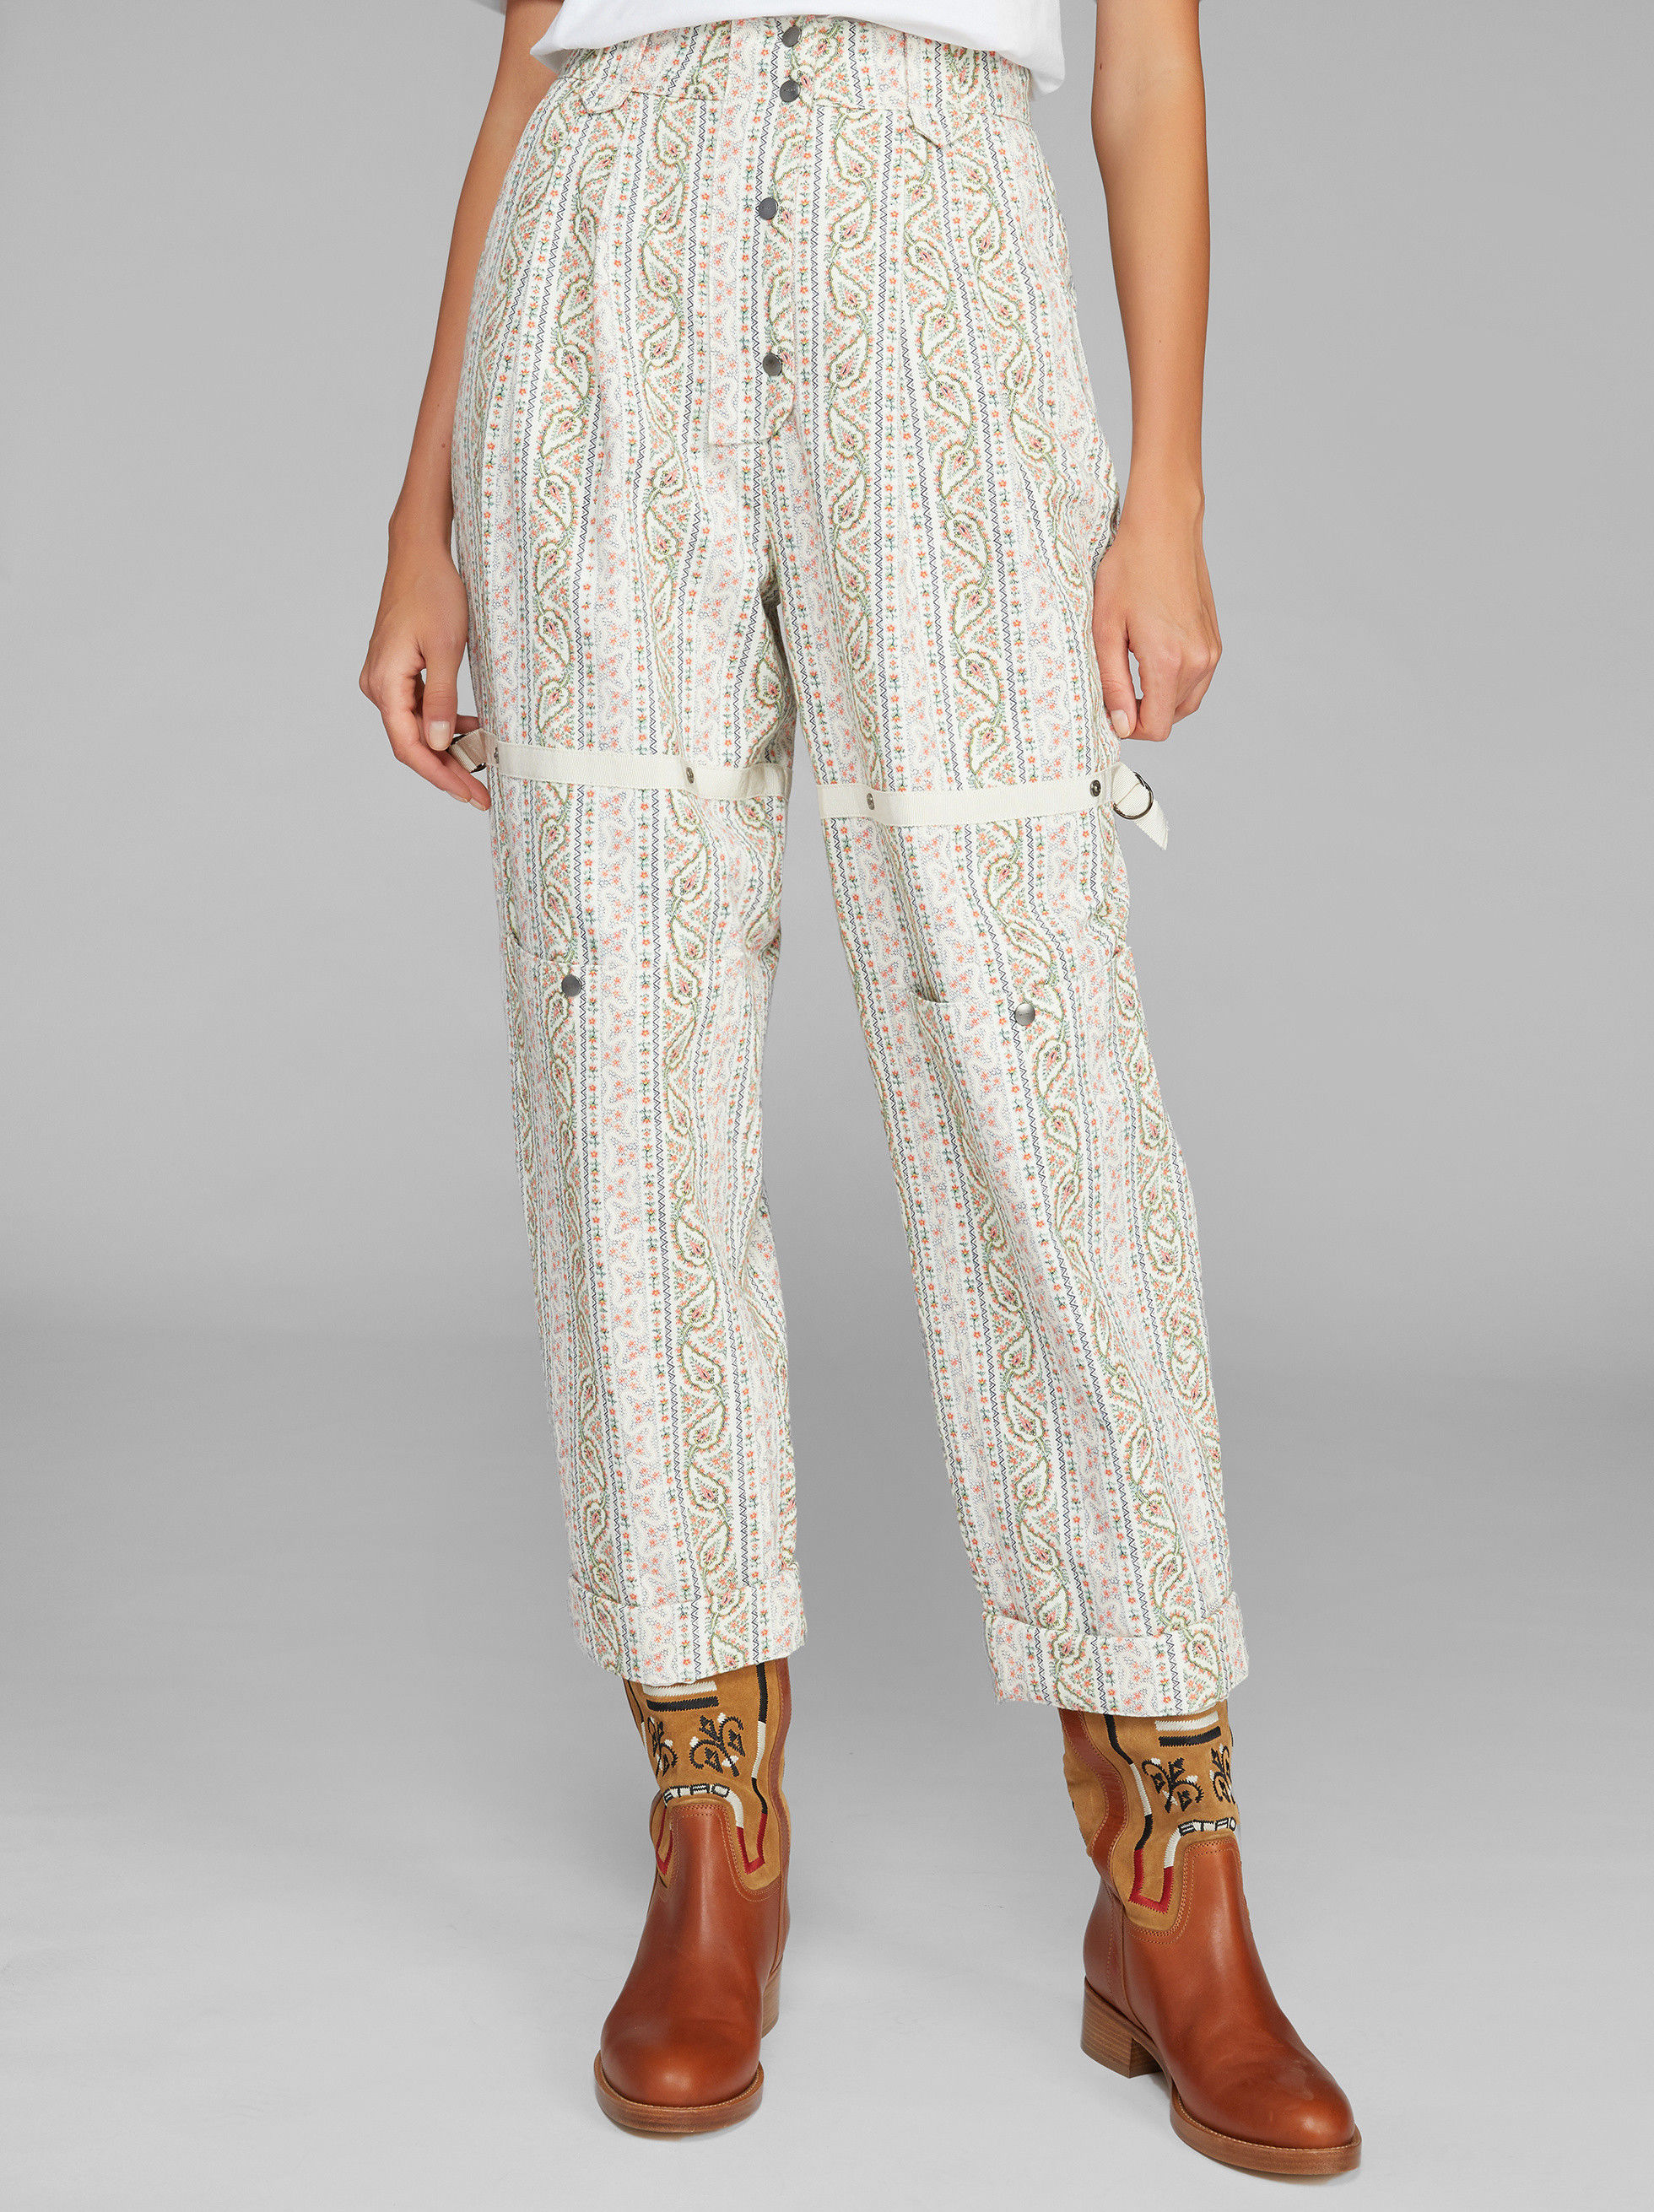 STRIPED PAISLEY PATTERN TROUSERS